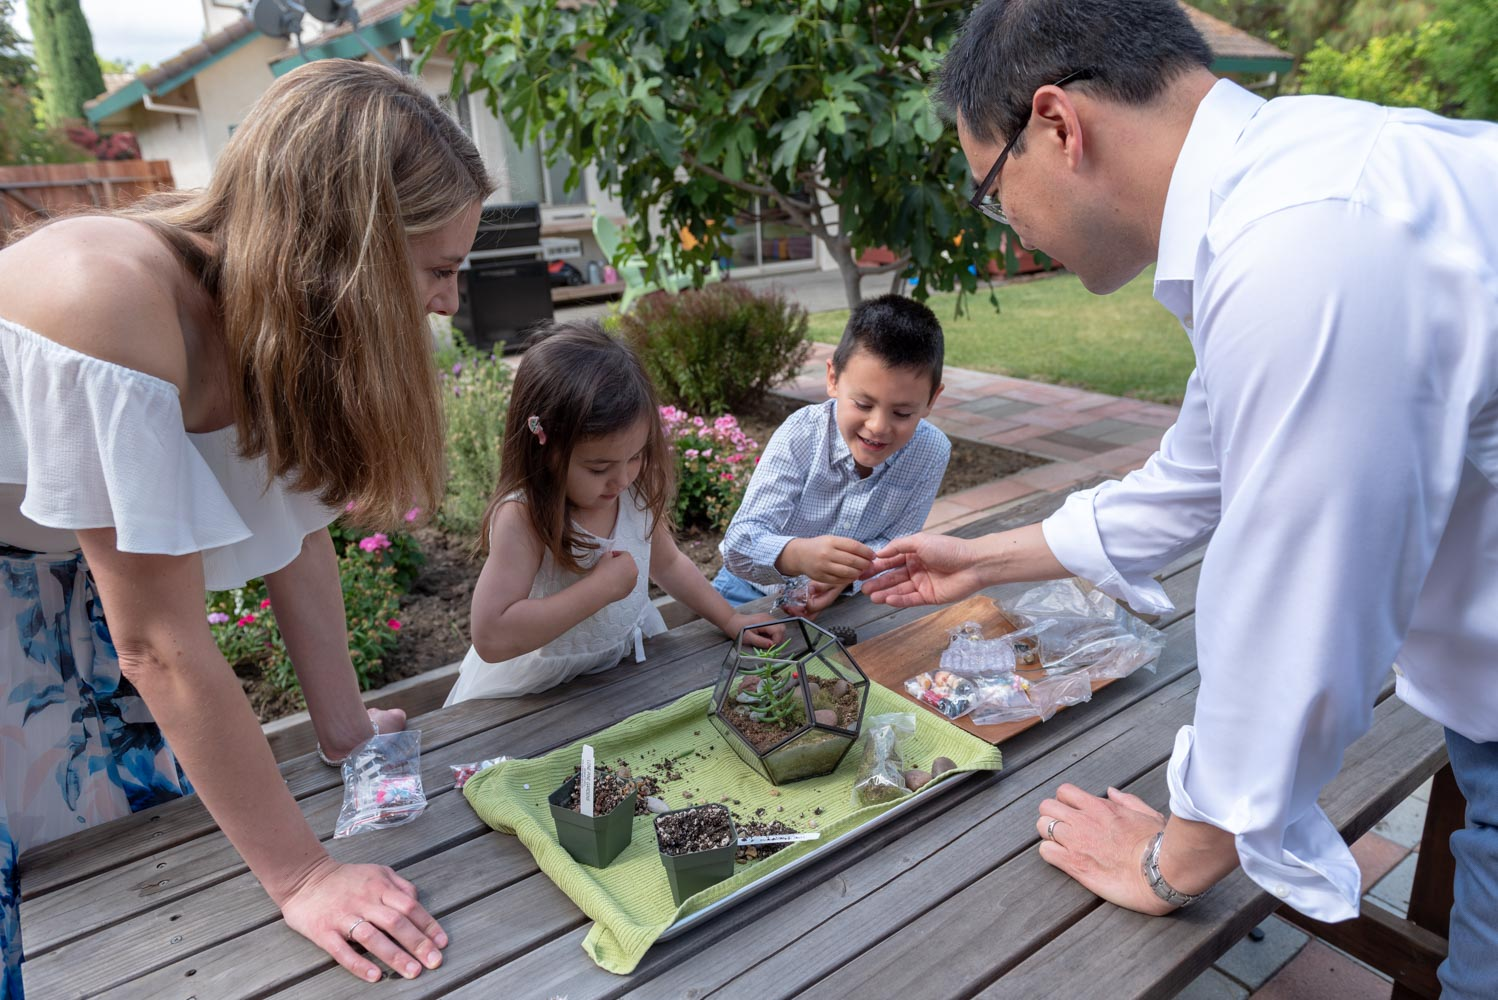 Parents and two young children planting a terrarium.